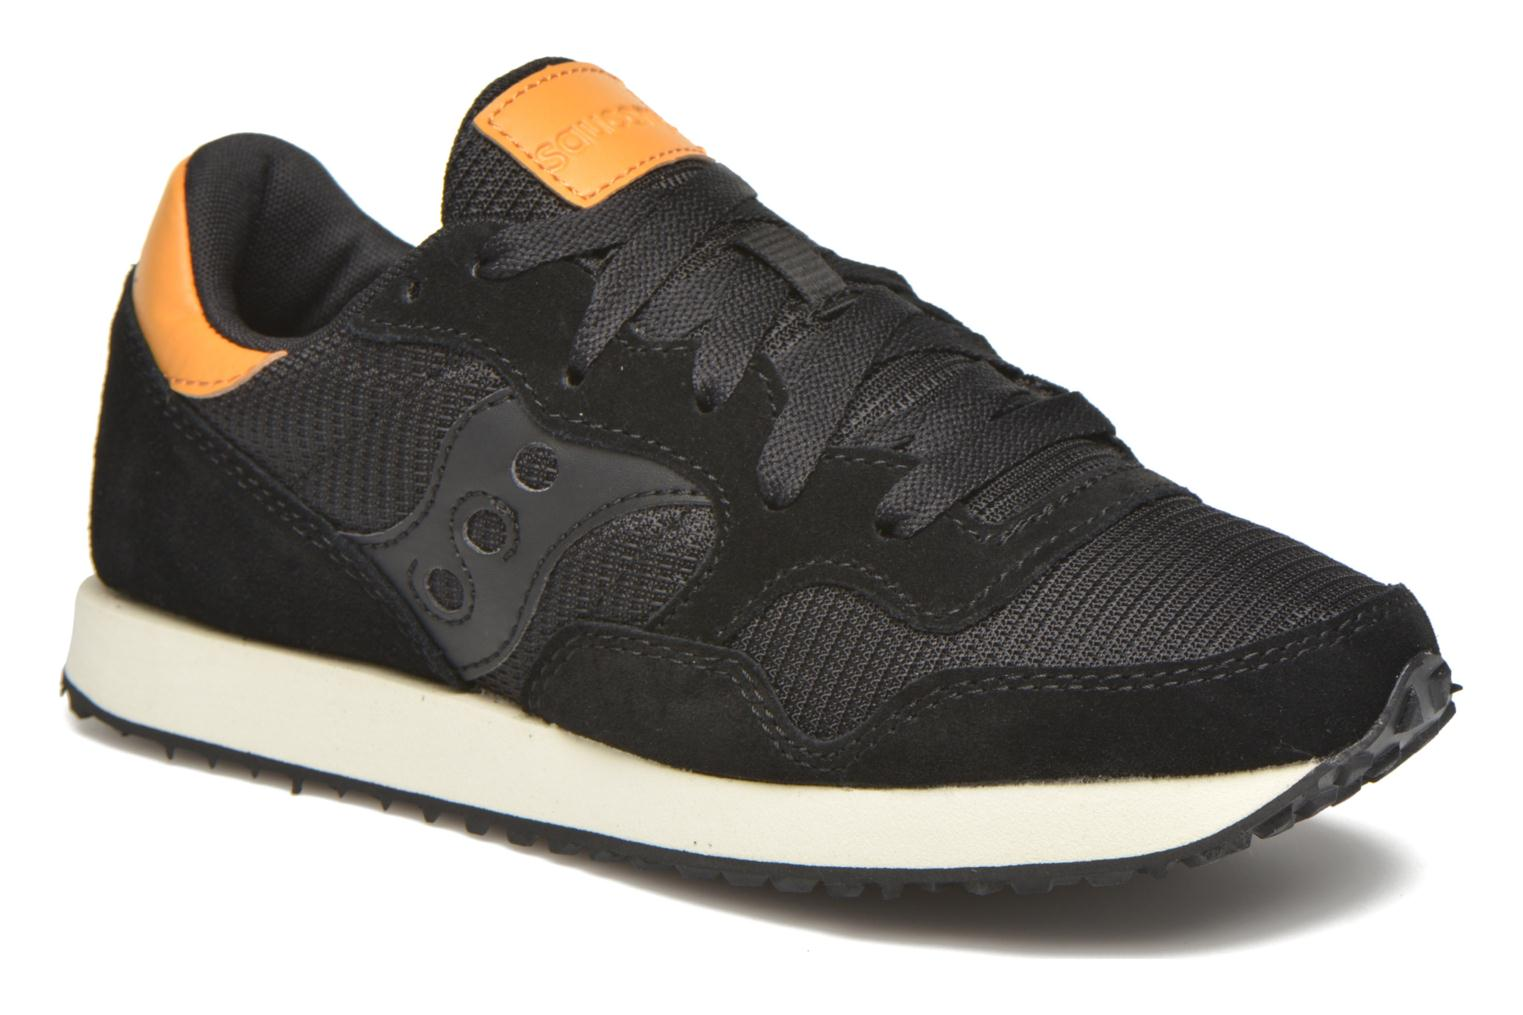 sneakers-dxn-trainer-w-by-saucony